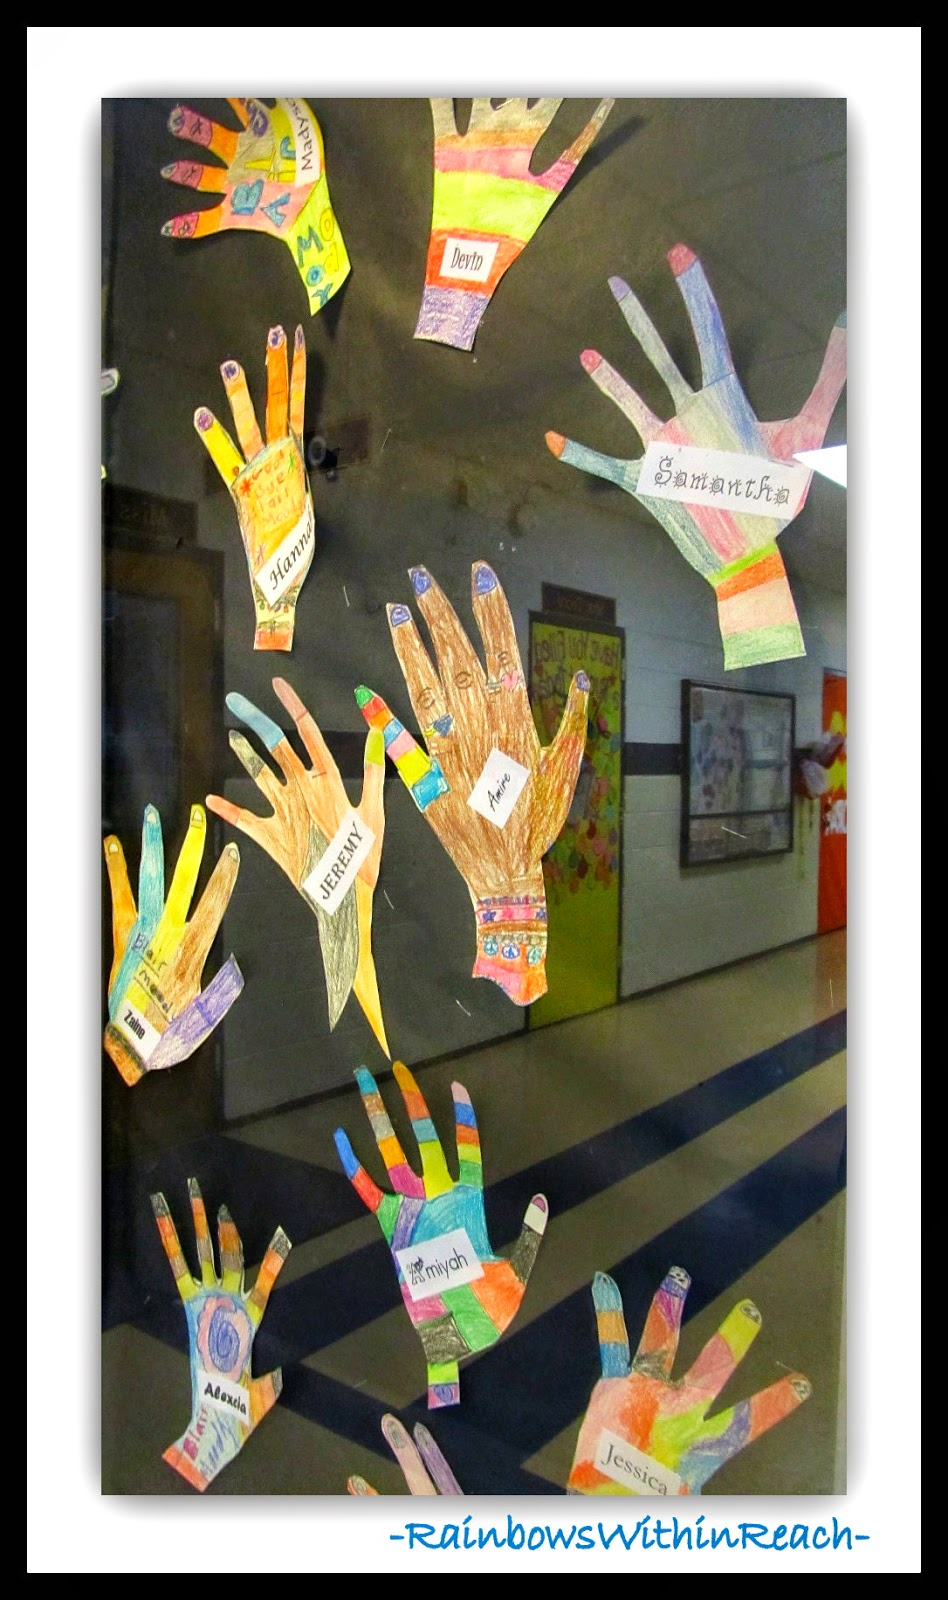 Personalized Hands in Showcase Display at RainbowsWithinReach